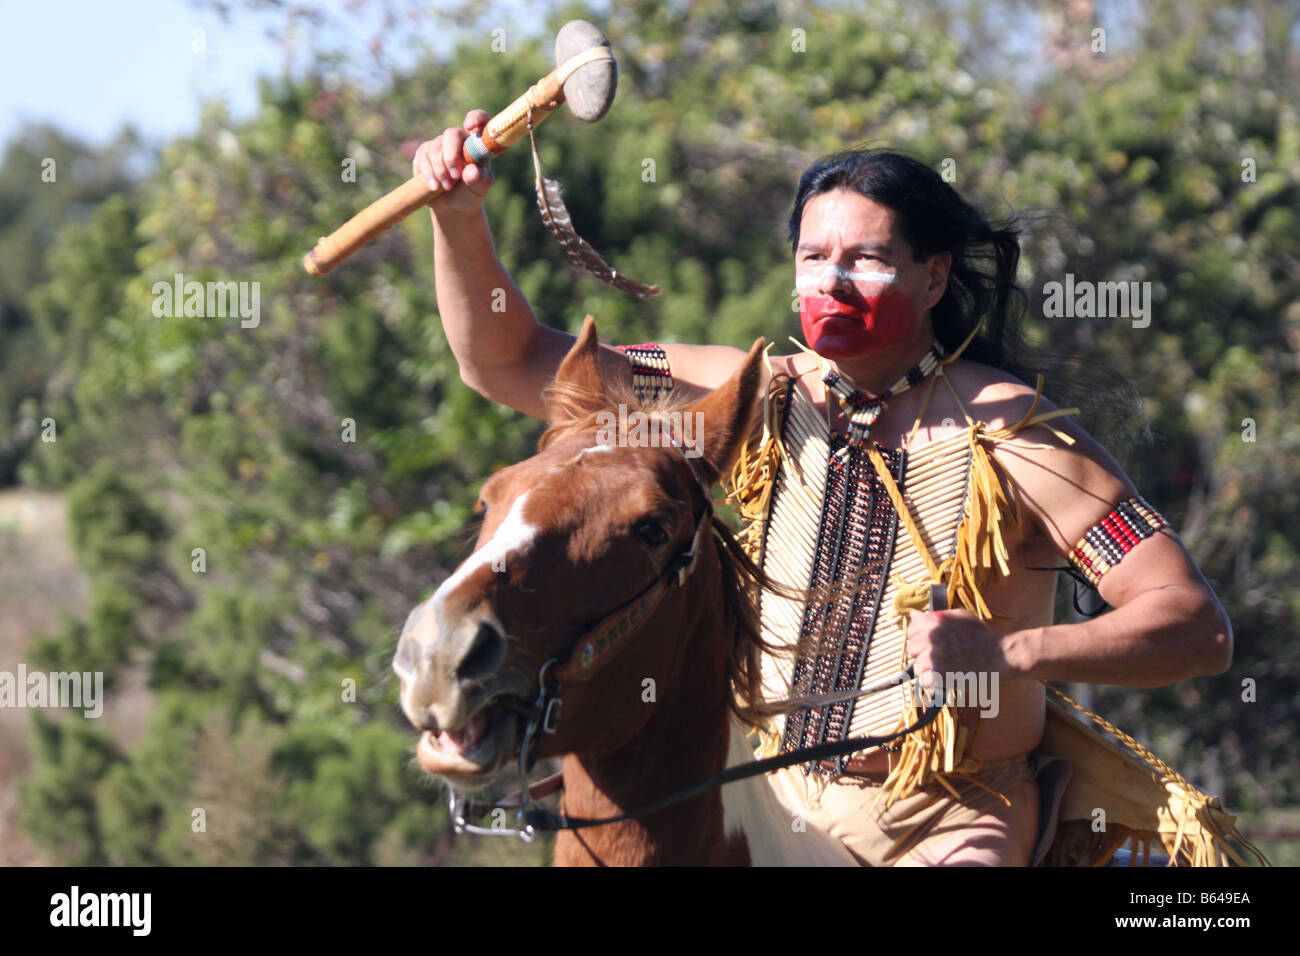 An Apache Native American Indian running horseback waving a stone hammer in attack - Stock Image